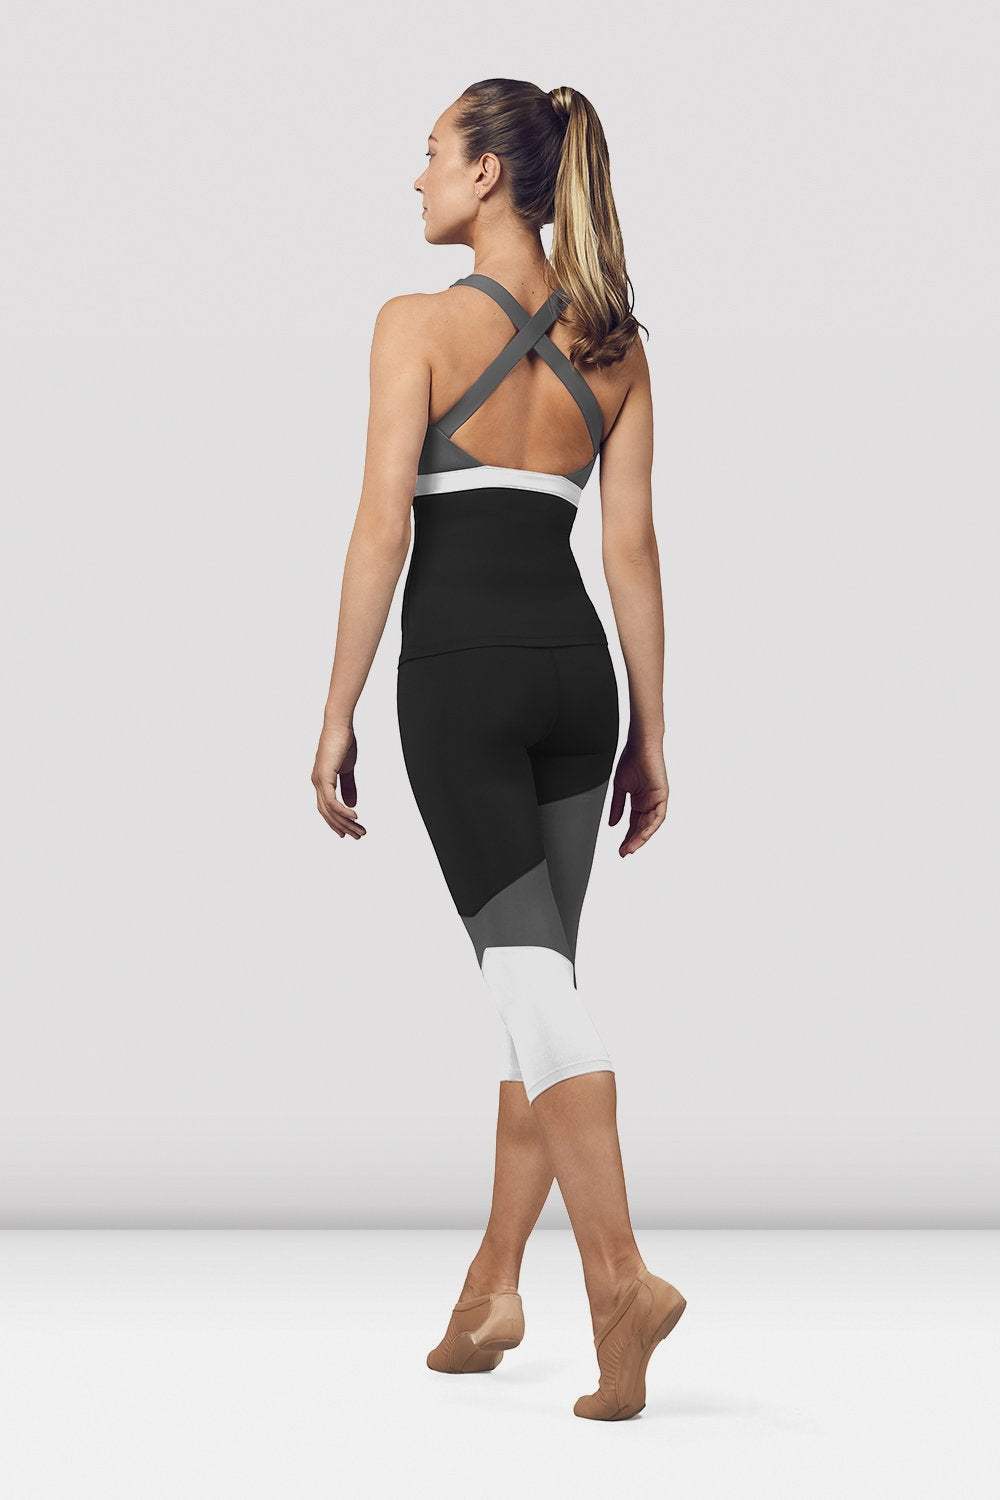 Black Bloch Ladies Scoop Neck Cross Back Tank Top on female model in parallel fourth position on releve facing back corner